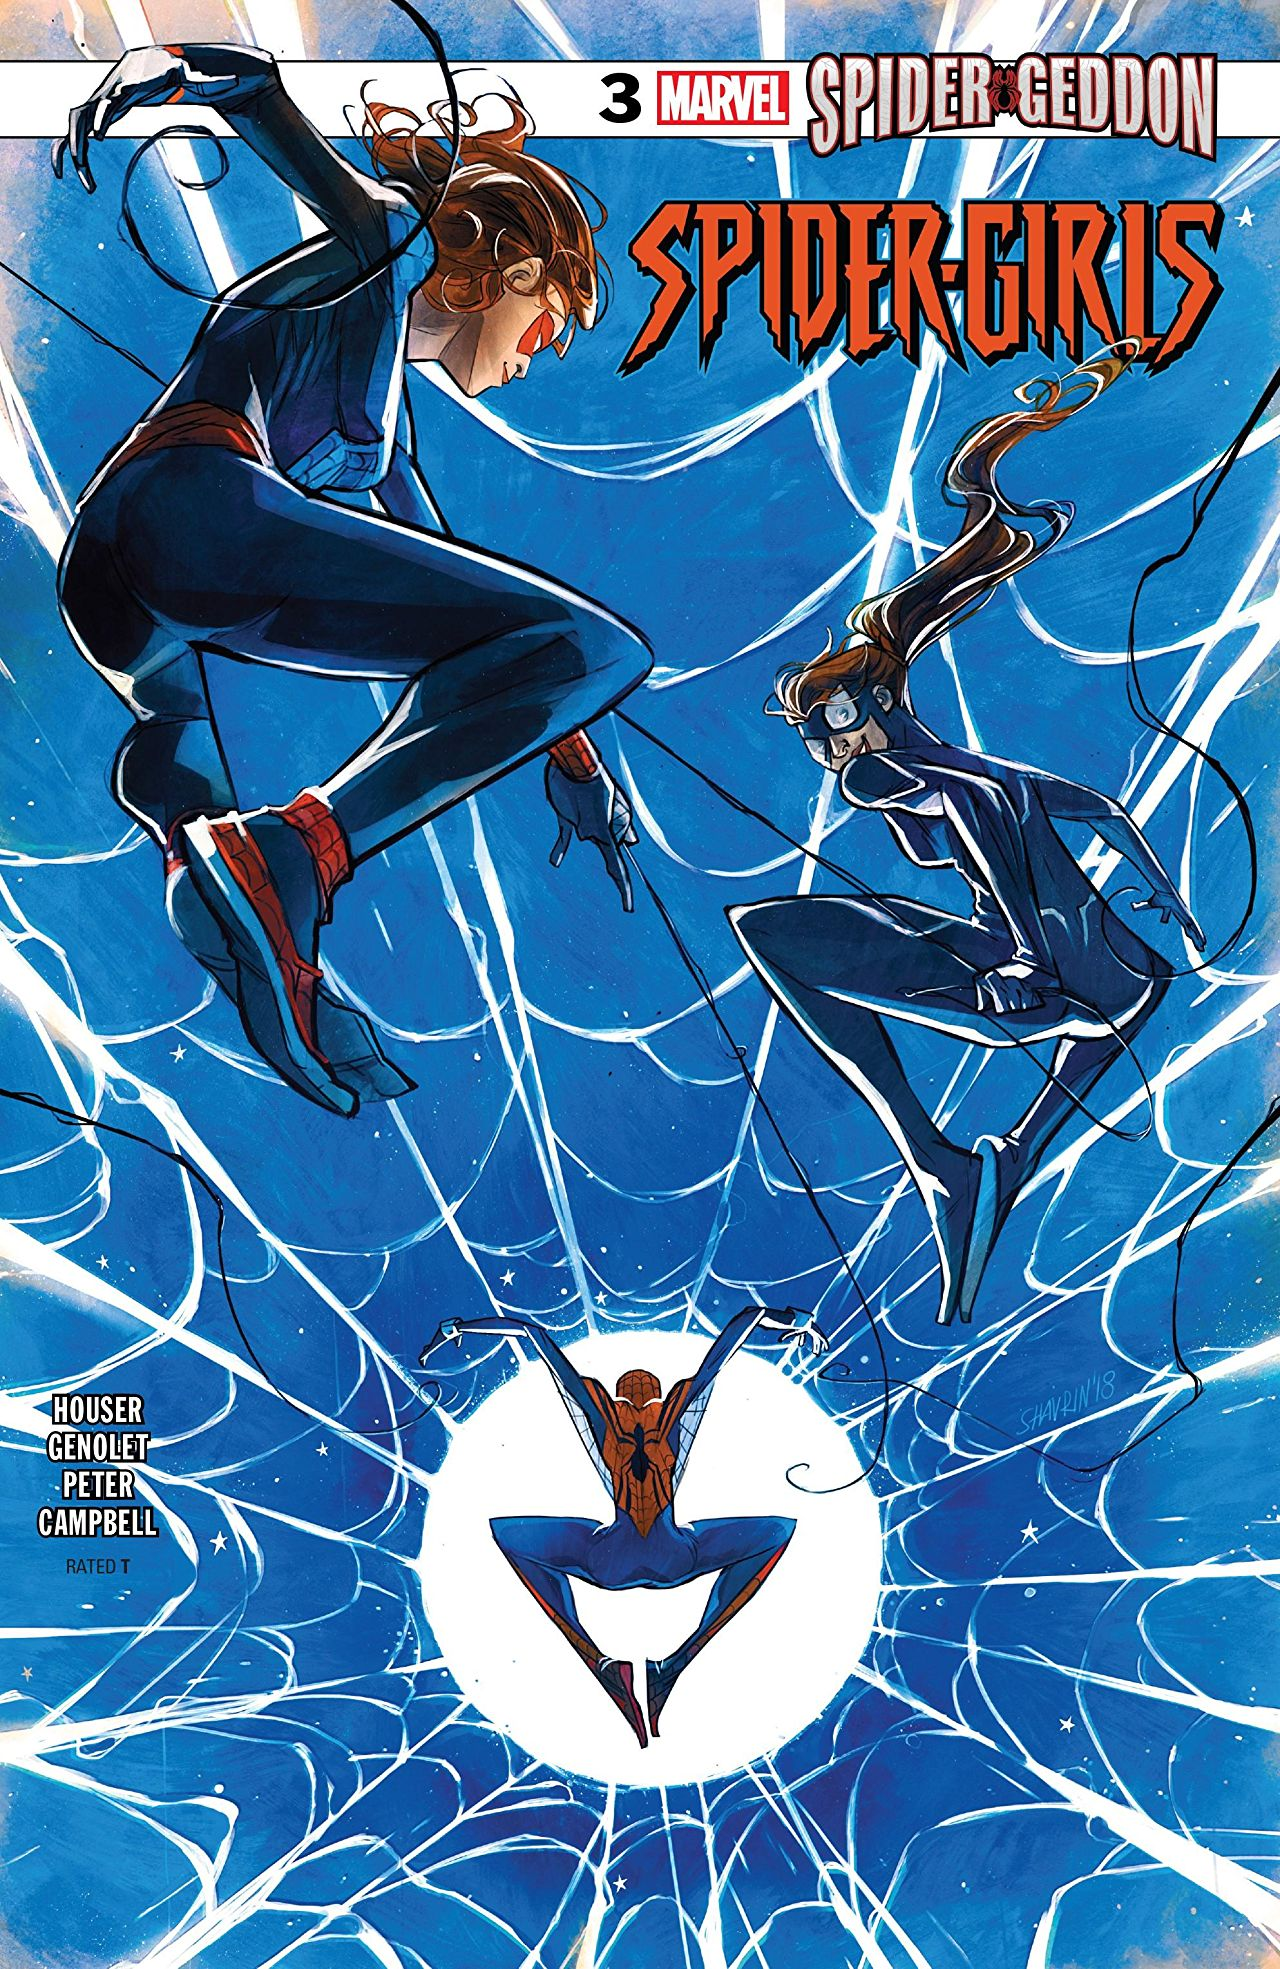 Spider-Girls #3 Review